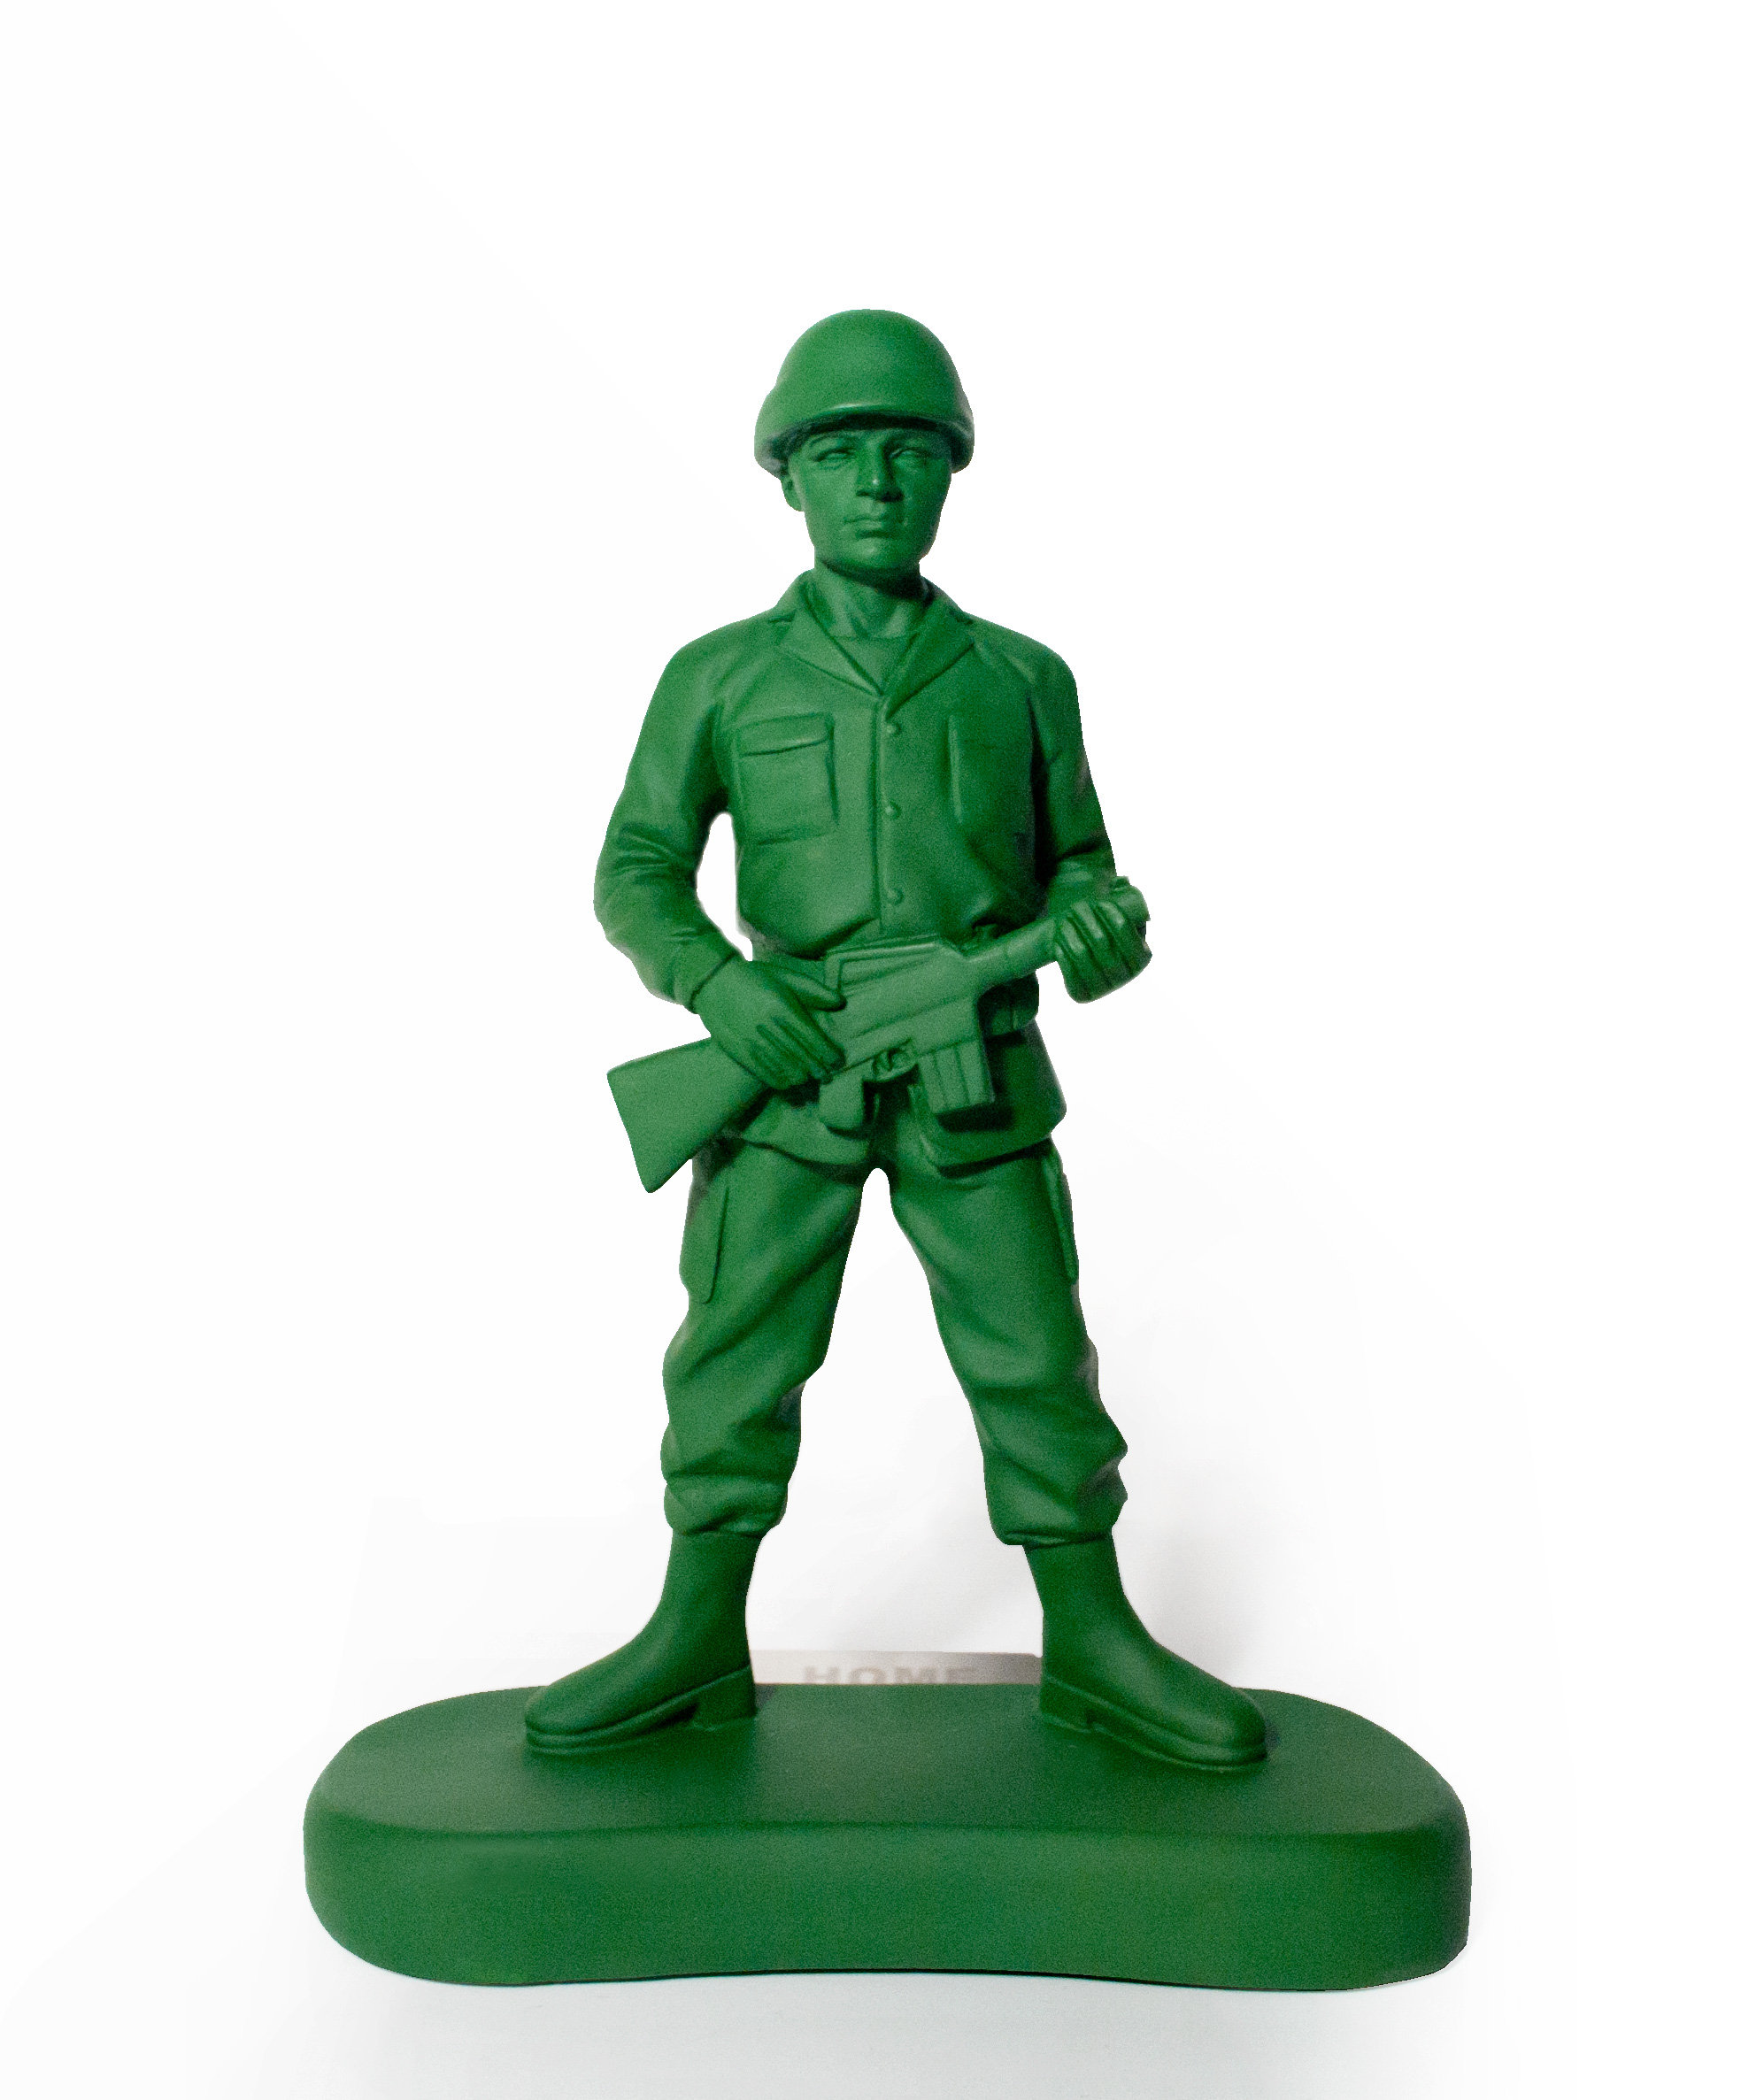 Best Toy And Model Soldiers For Kids : Home guard content gallery doorstop bookend giant toy